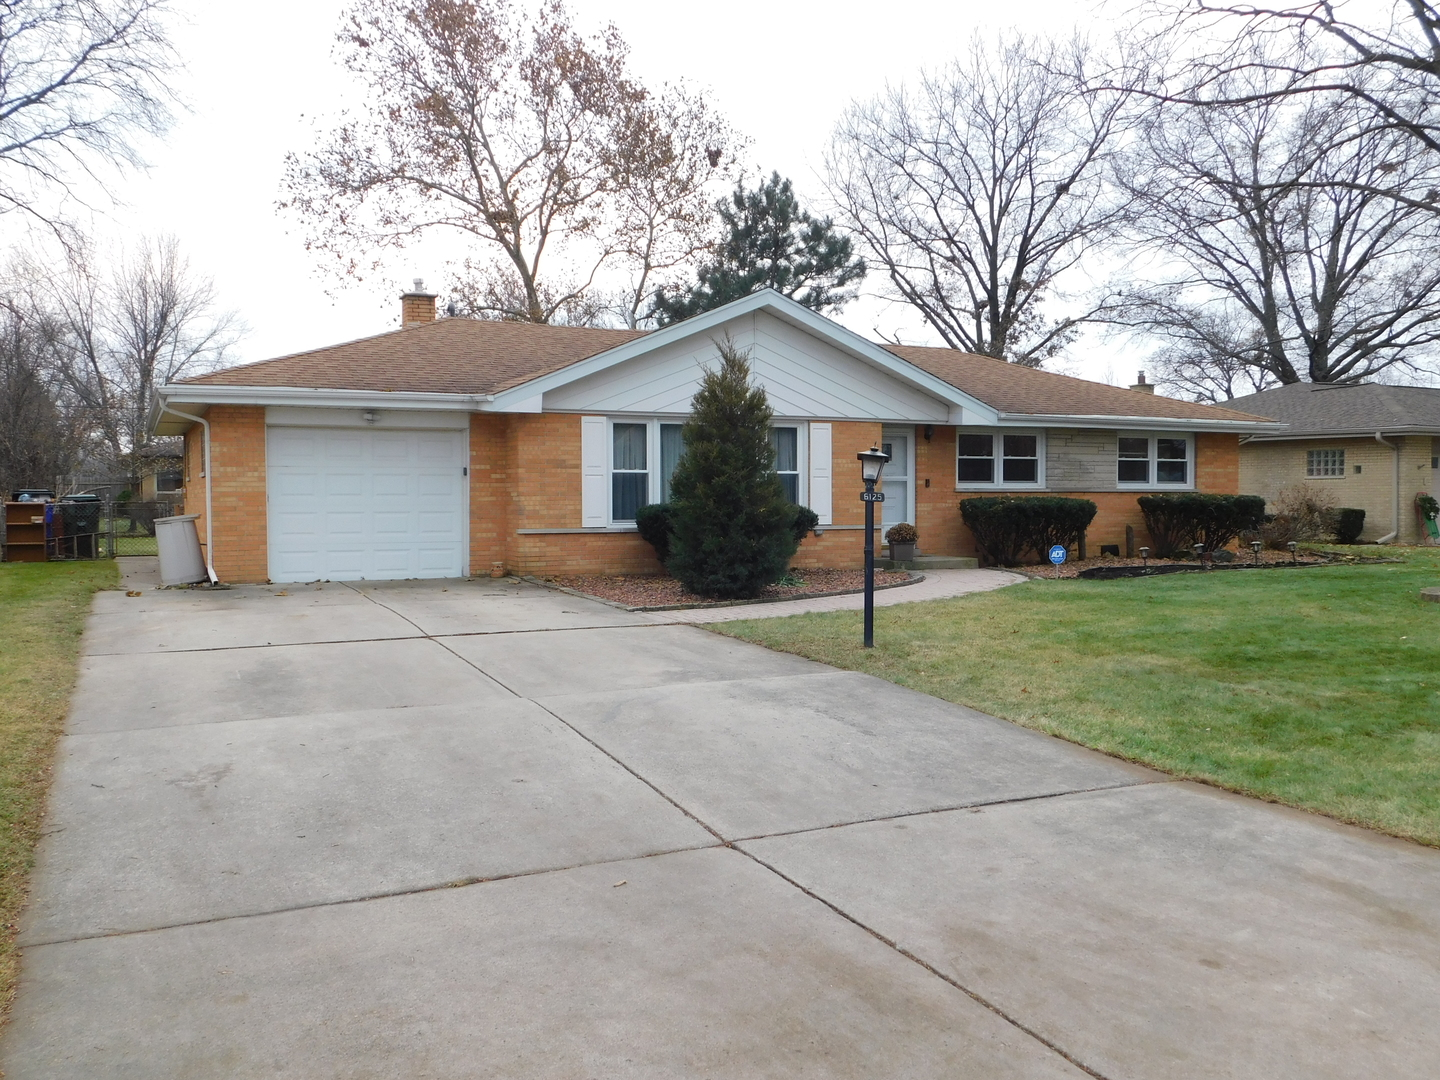 6125 West 127th Place, Palos Heights, Illinois